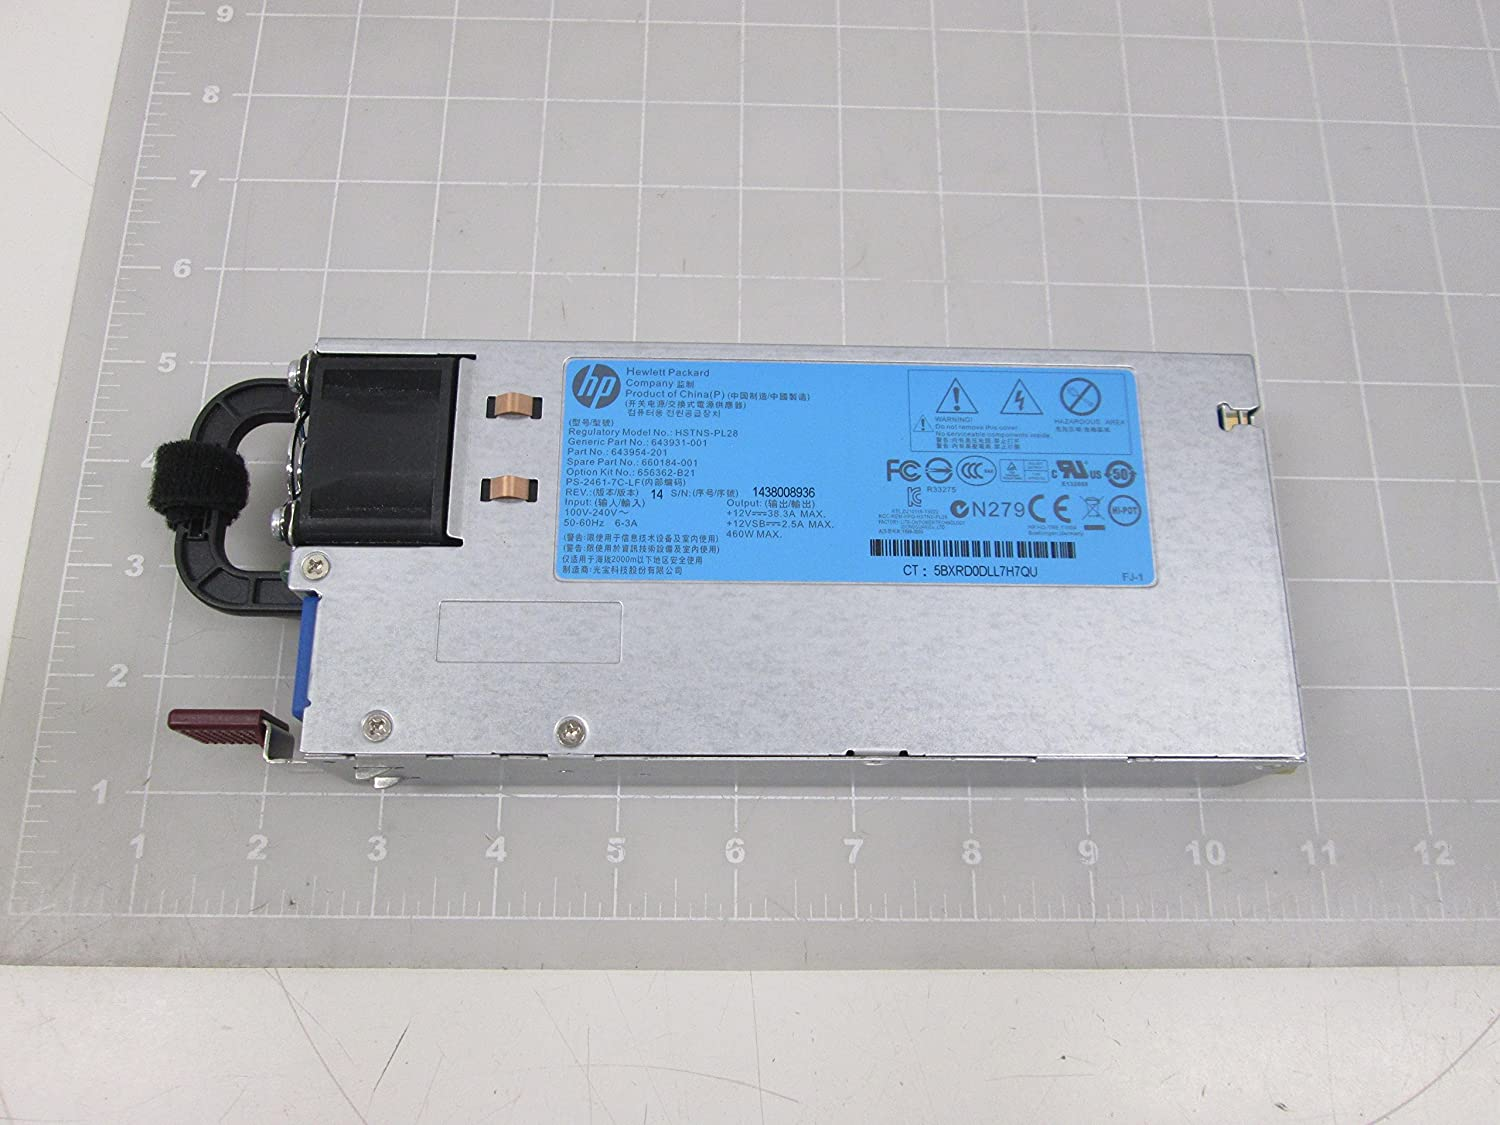 HP Hewlett Packard HSTNS-PL28, 643931-001, 643954-201, 660184-001 Power Supply T62563